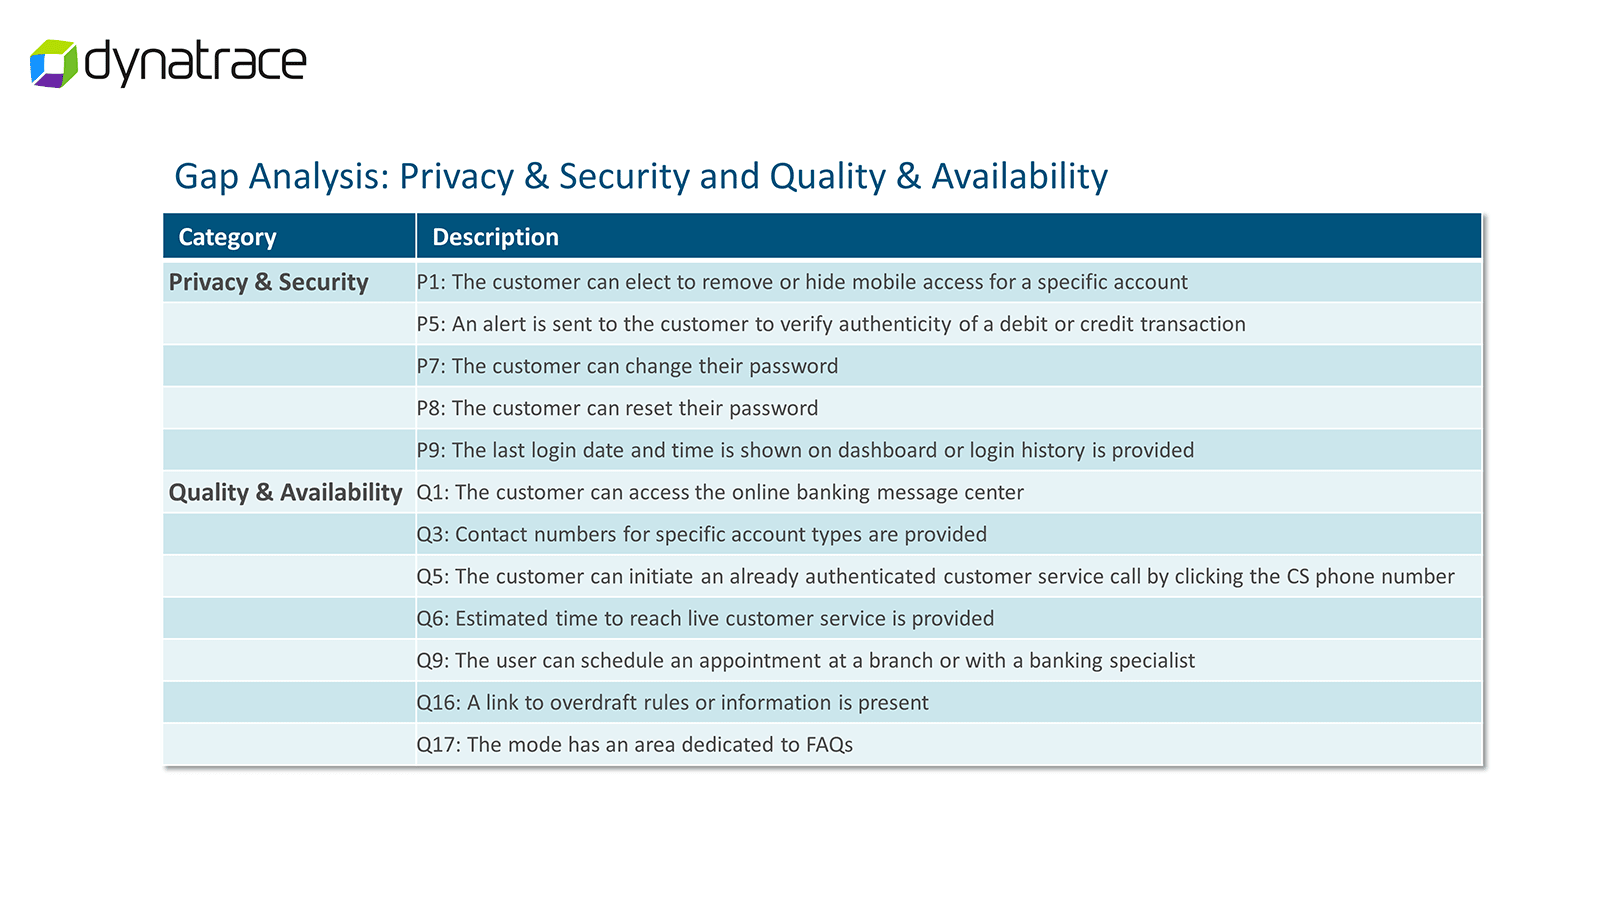 Privacy and Quality